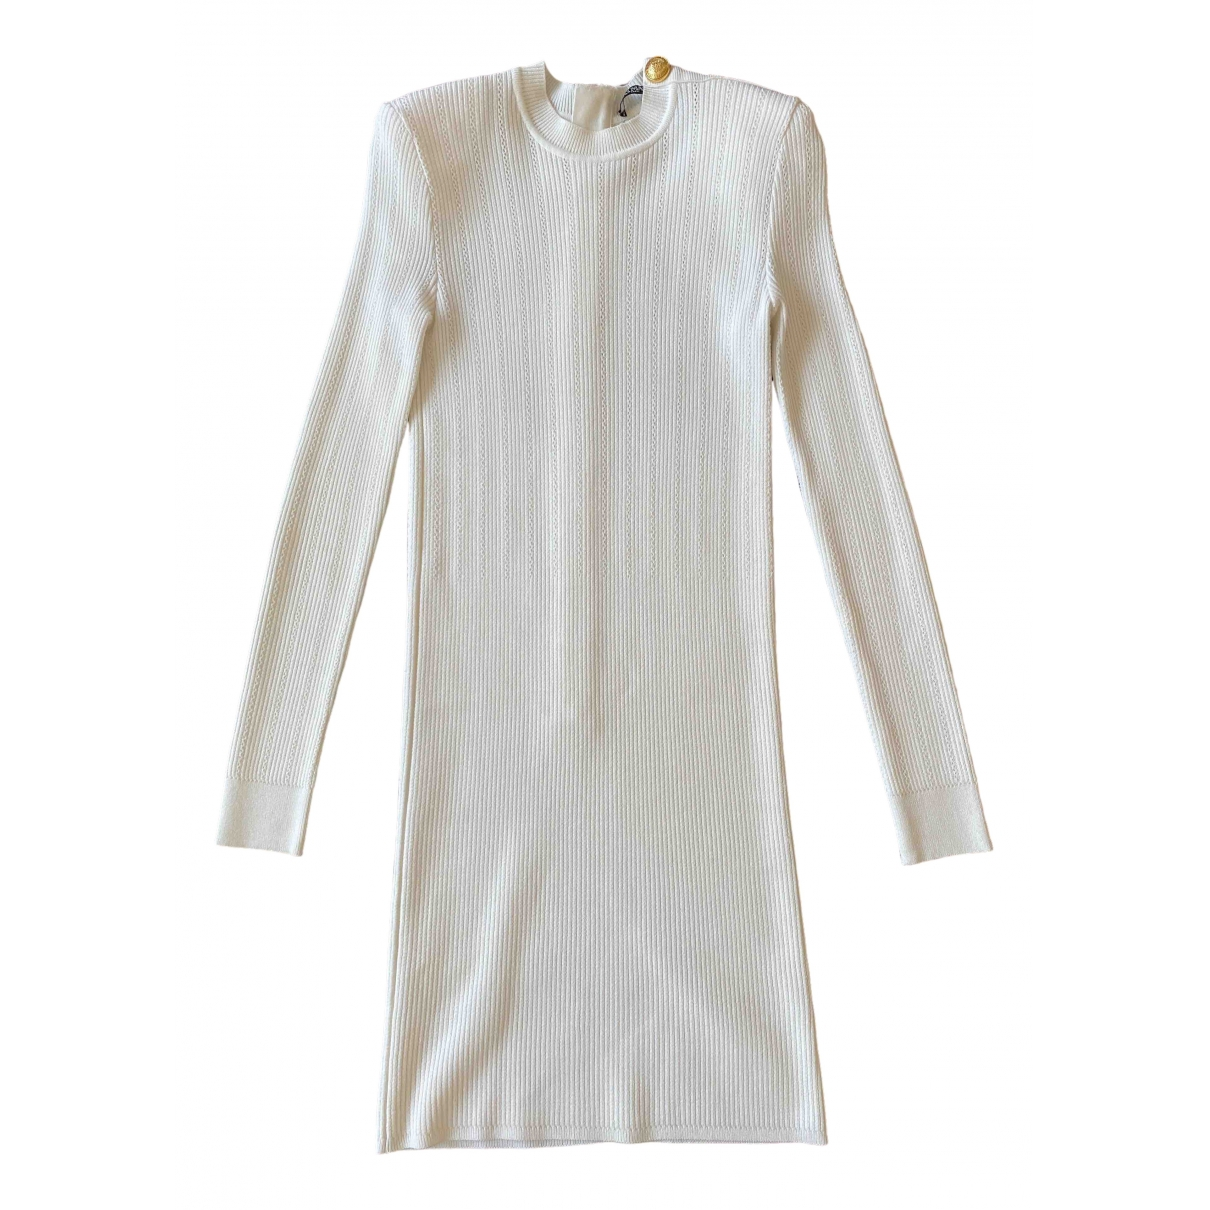 Balmain \N White dress for Women 40 FR